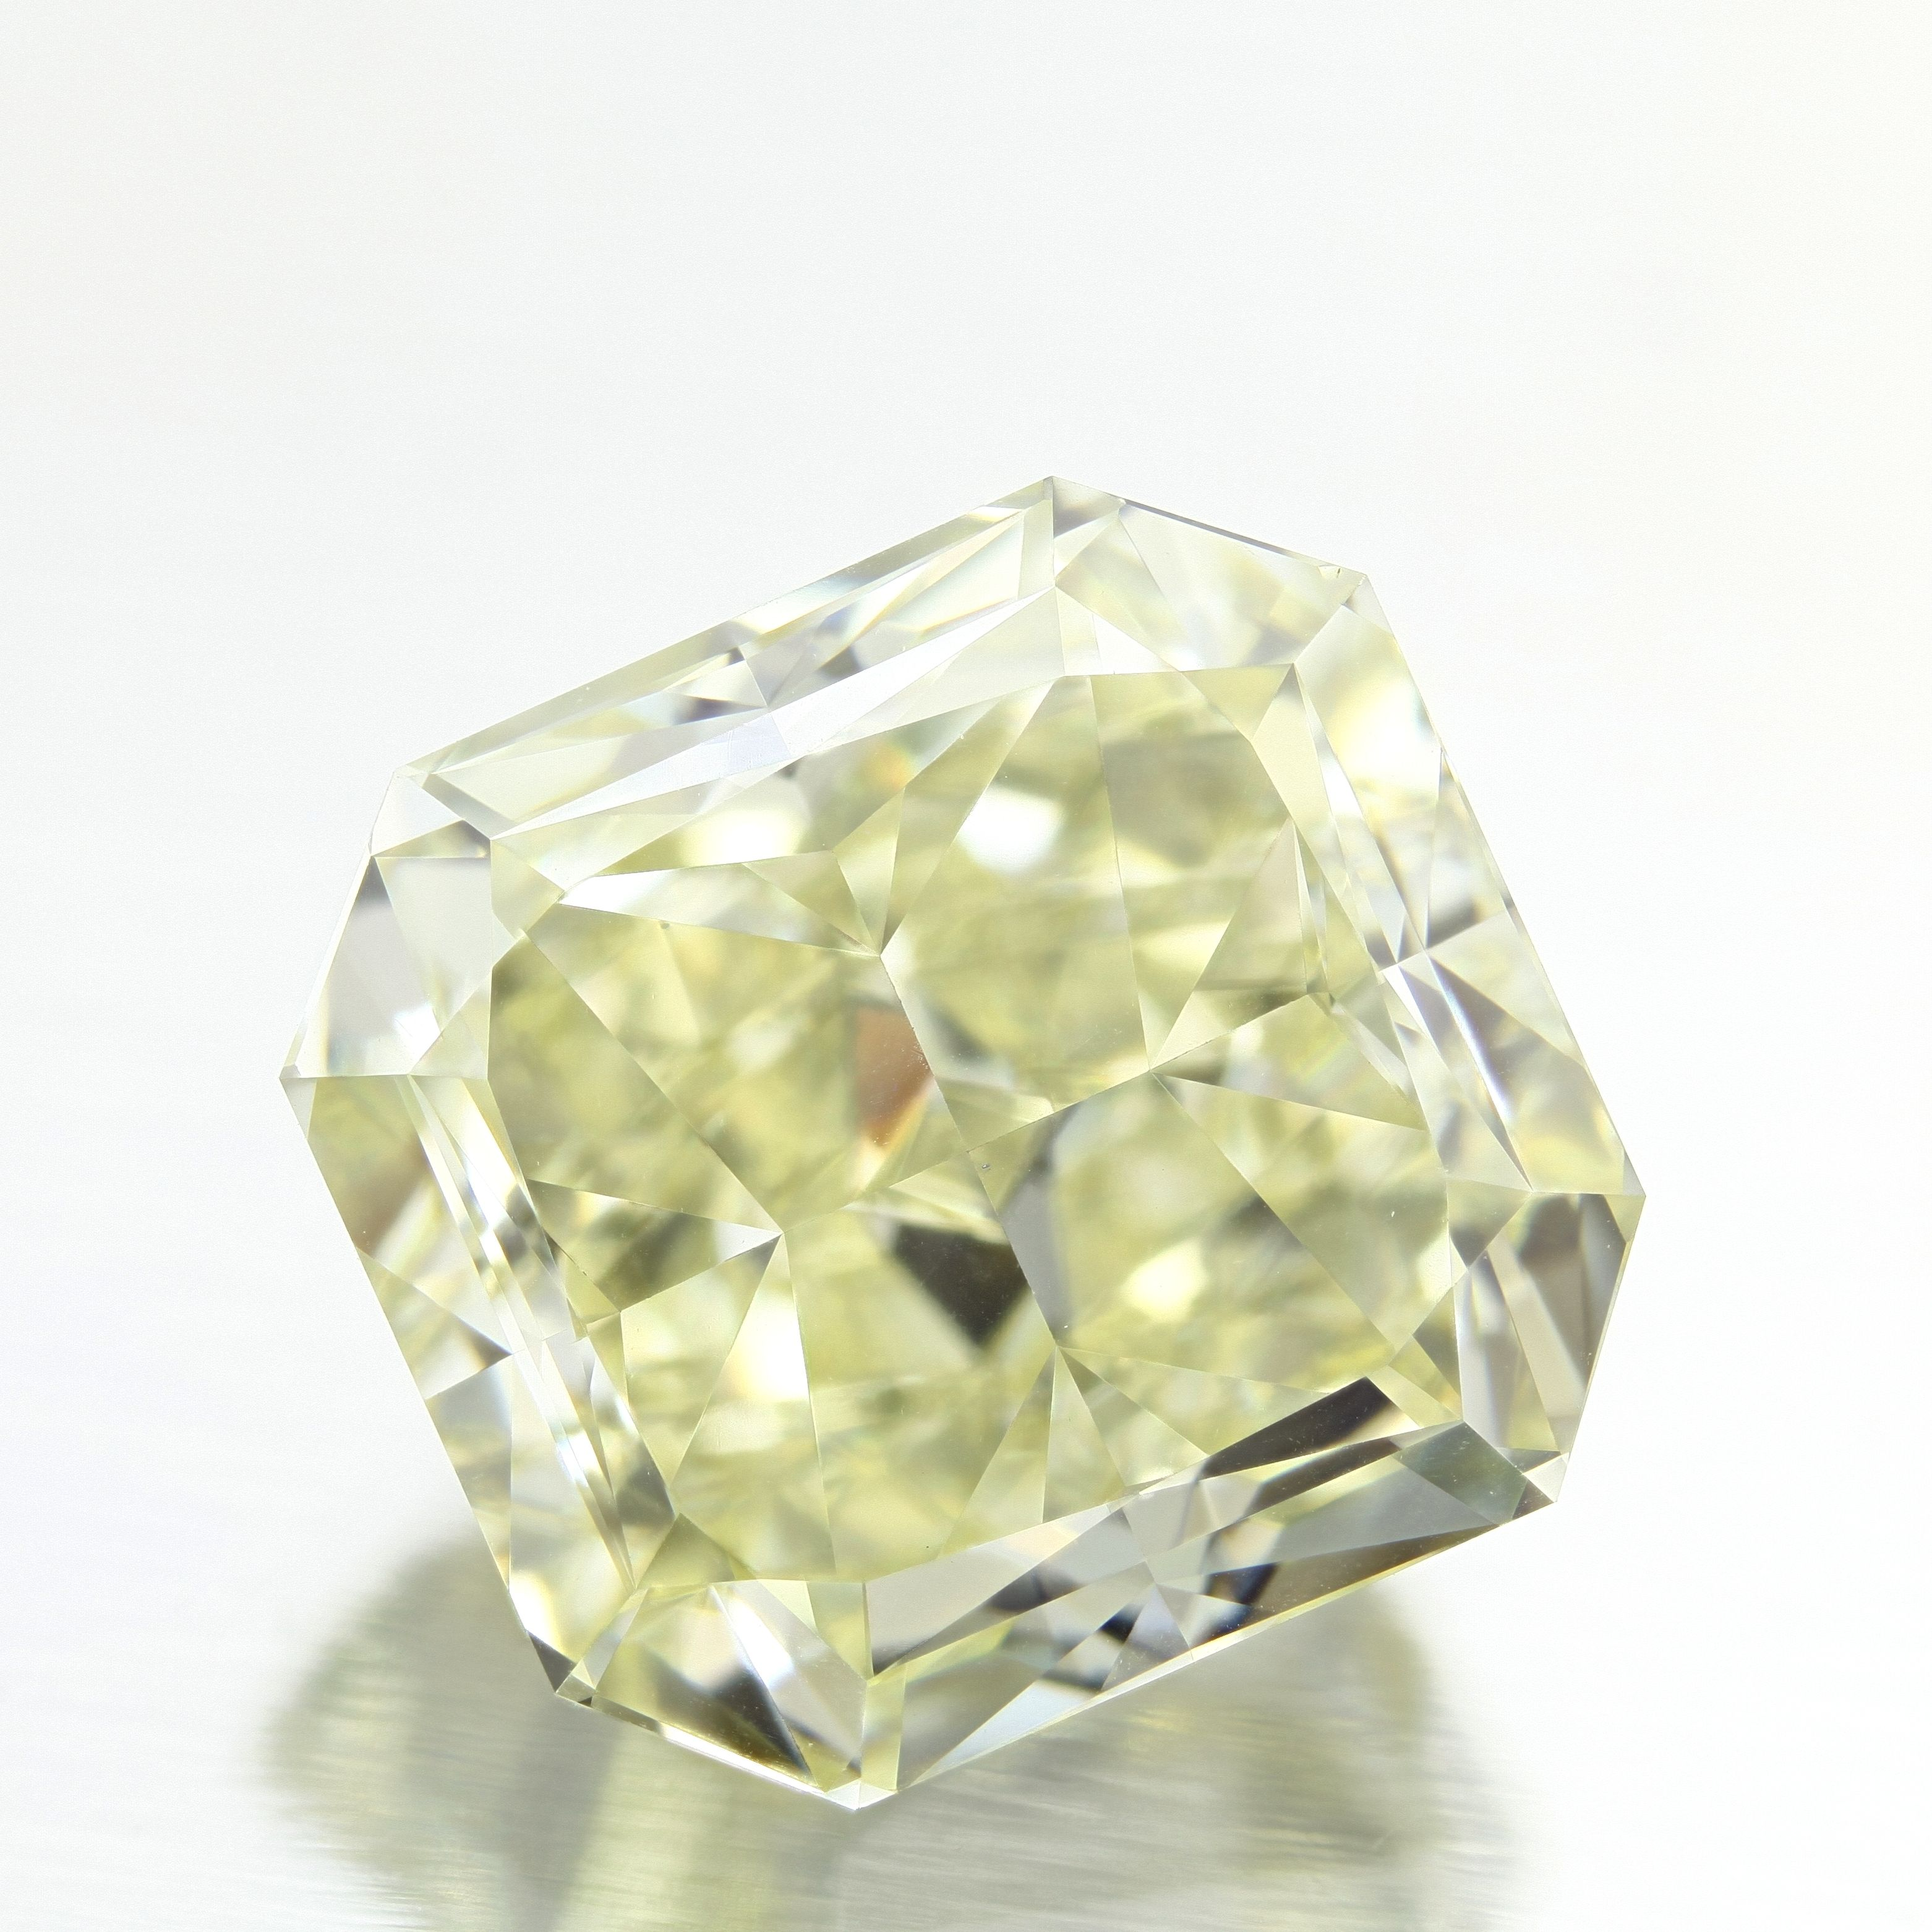 Shape: Radiant | Weight: 7.03ct | Color: Fancy Yellow | Clarity: VS1 | LAB: GIA | Cert Link: http://download.certimage.com/Certificates/PP3649.pdf  #fancycolordiamonds #middiamonds #fancy #diamonds #diamond #mid #radiant #GIA